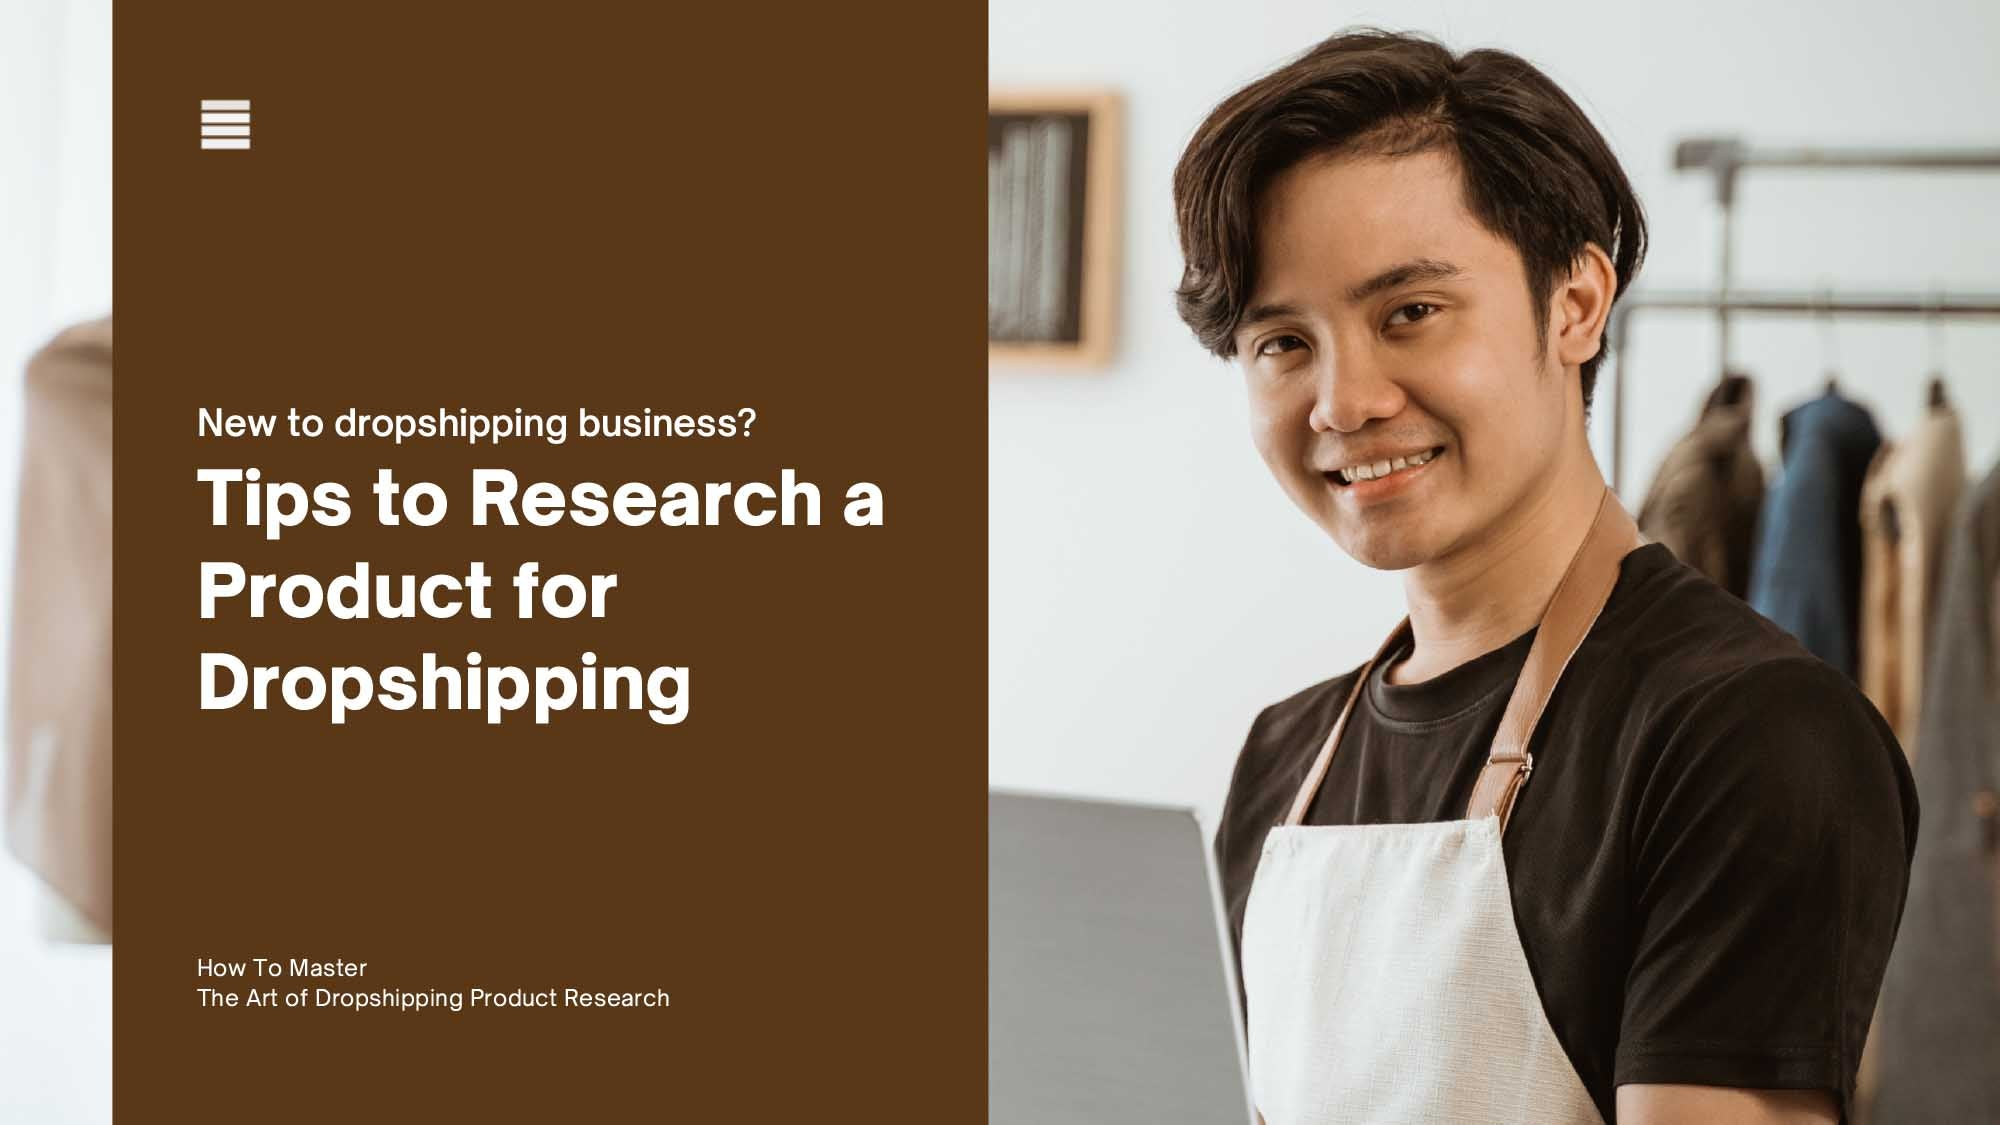 How To Master The Art of Dropshipping Product Research